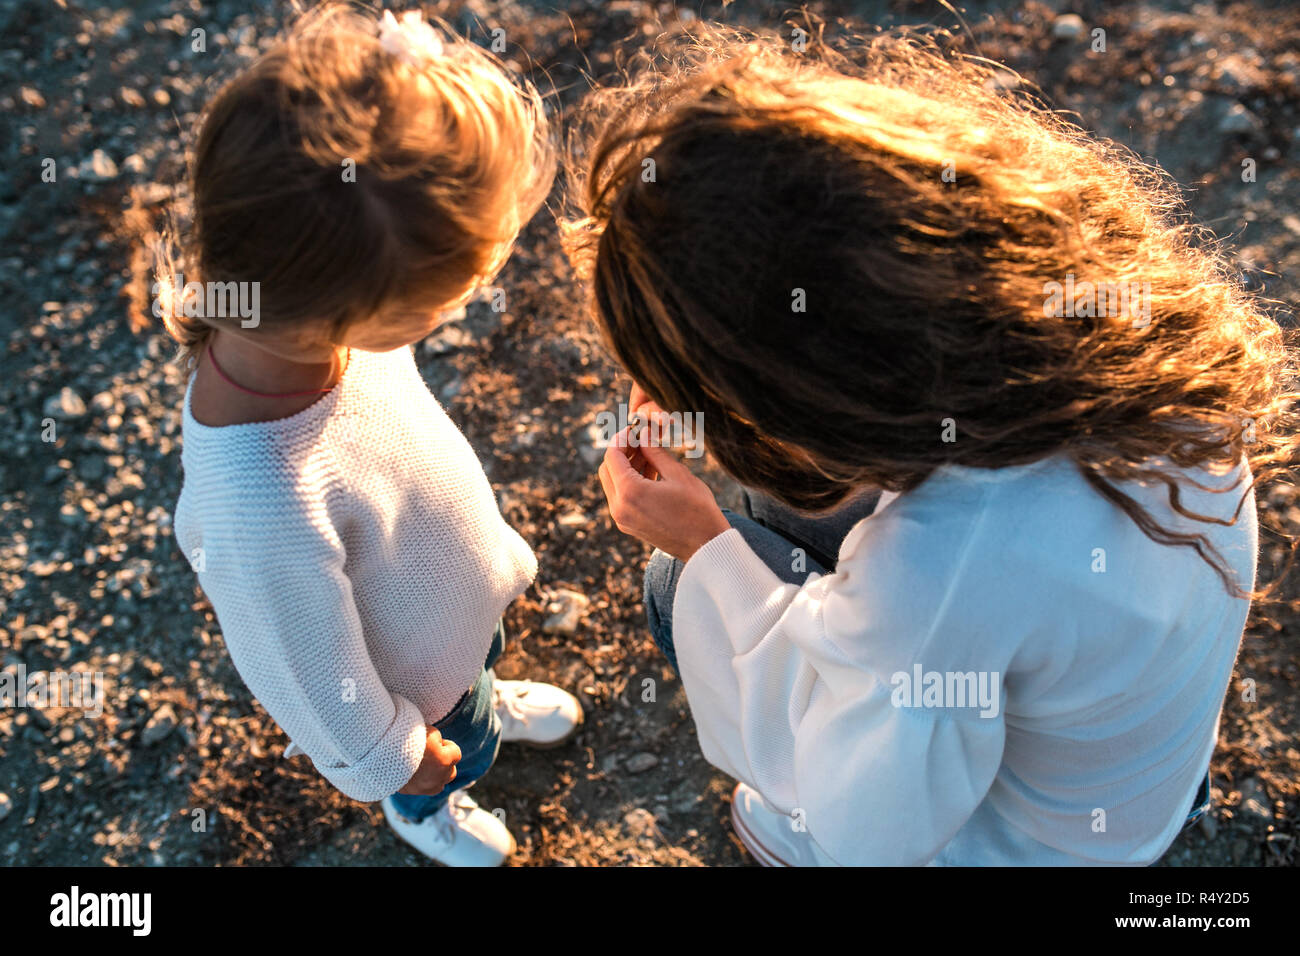 Mum and daughter having fun together outdoors. Stock Photo